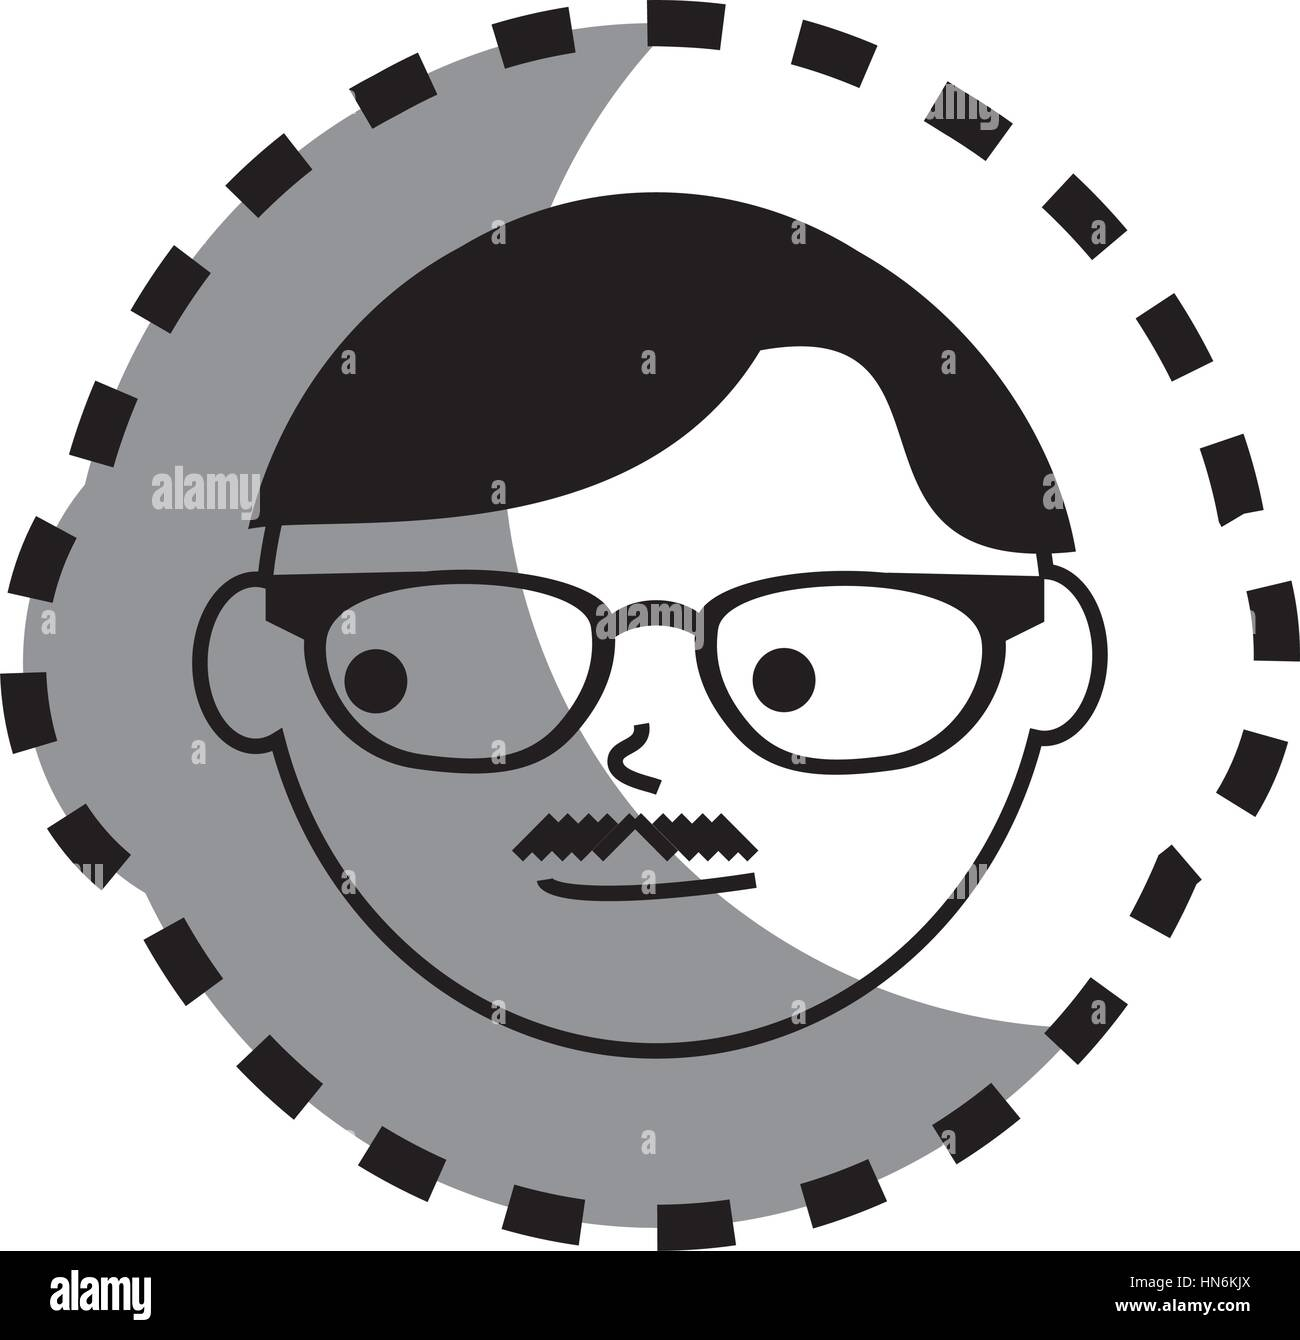 Autocollant avec visage homme monochrome avec lunettes et moustache english style vector illustration photo stock